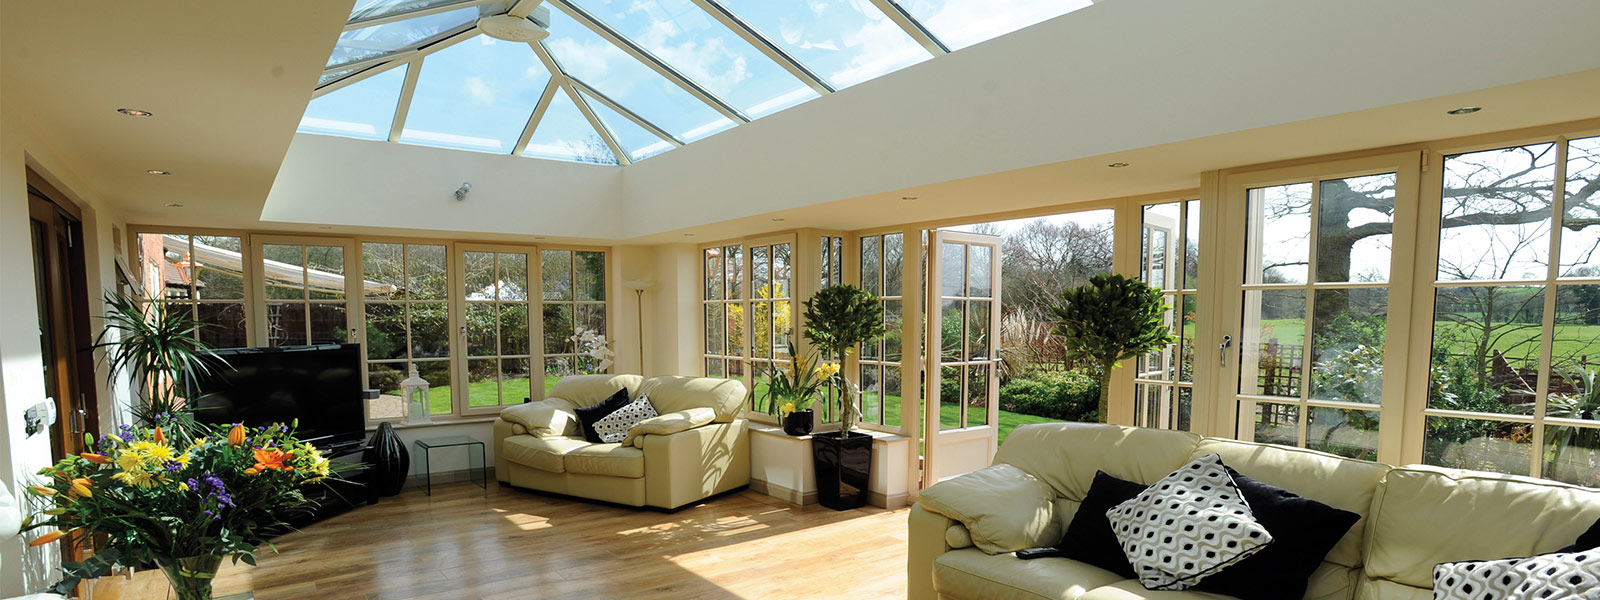 Eiments upvc doors windows conservatories york